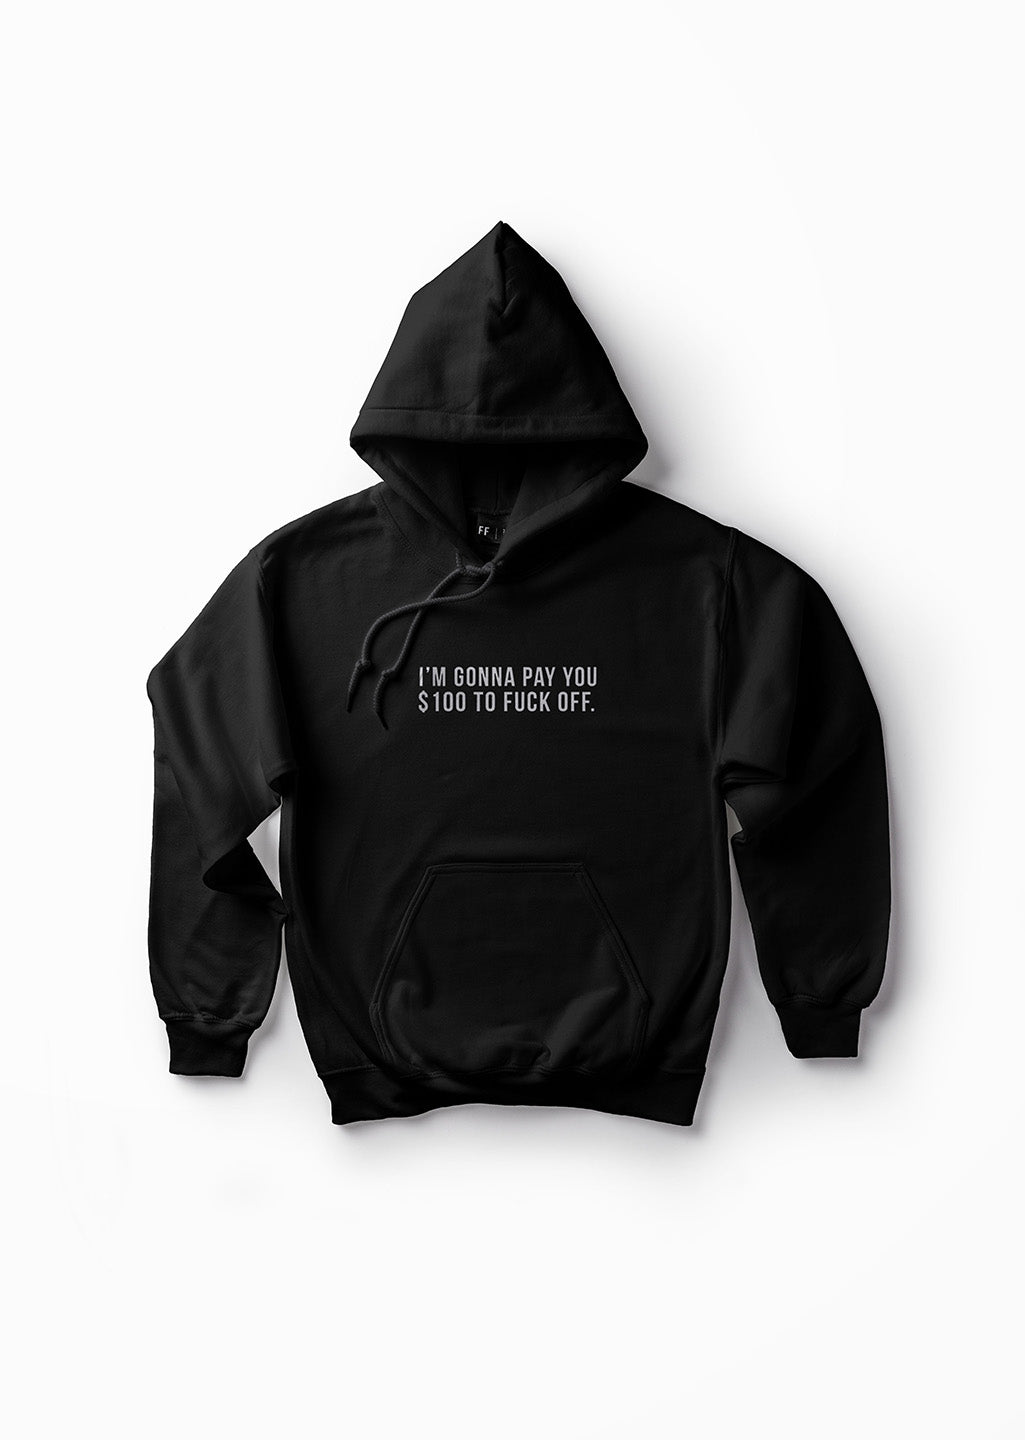 I'm Gonna Pay You $100 to Fuck Off / Unisex Hoodie